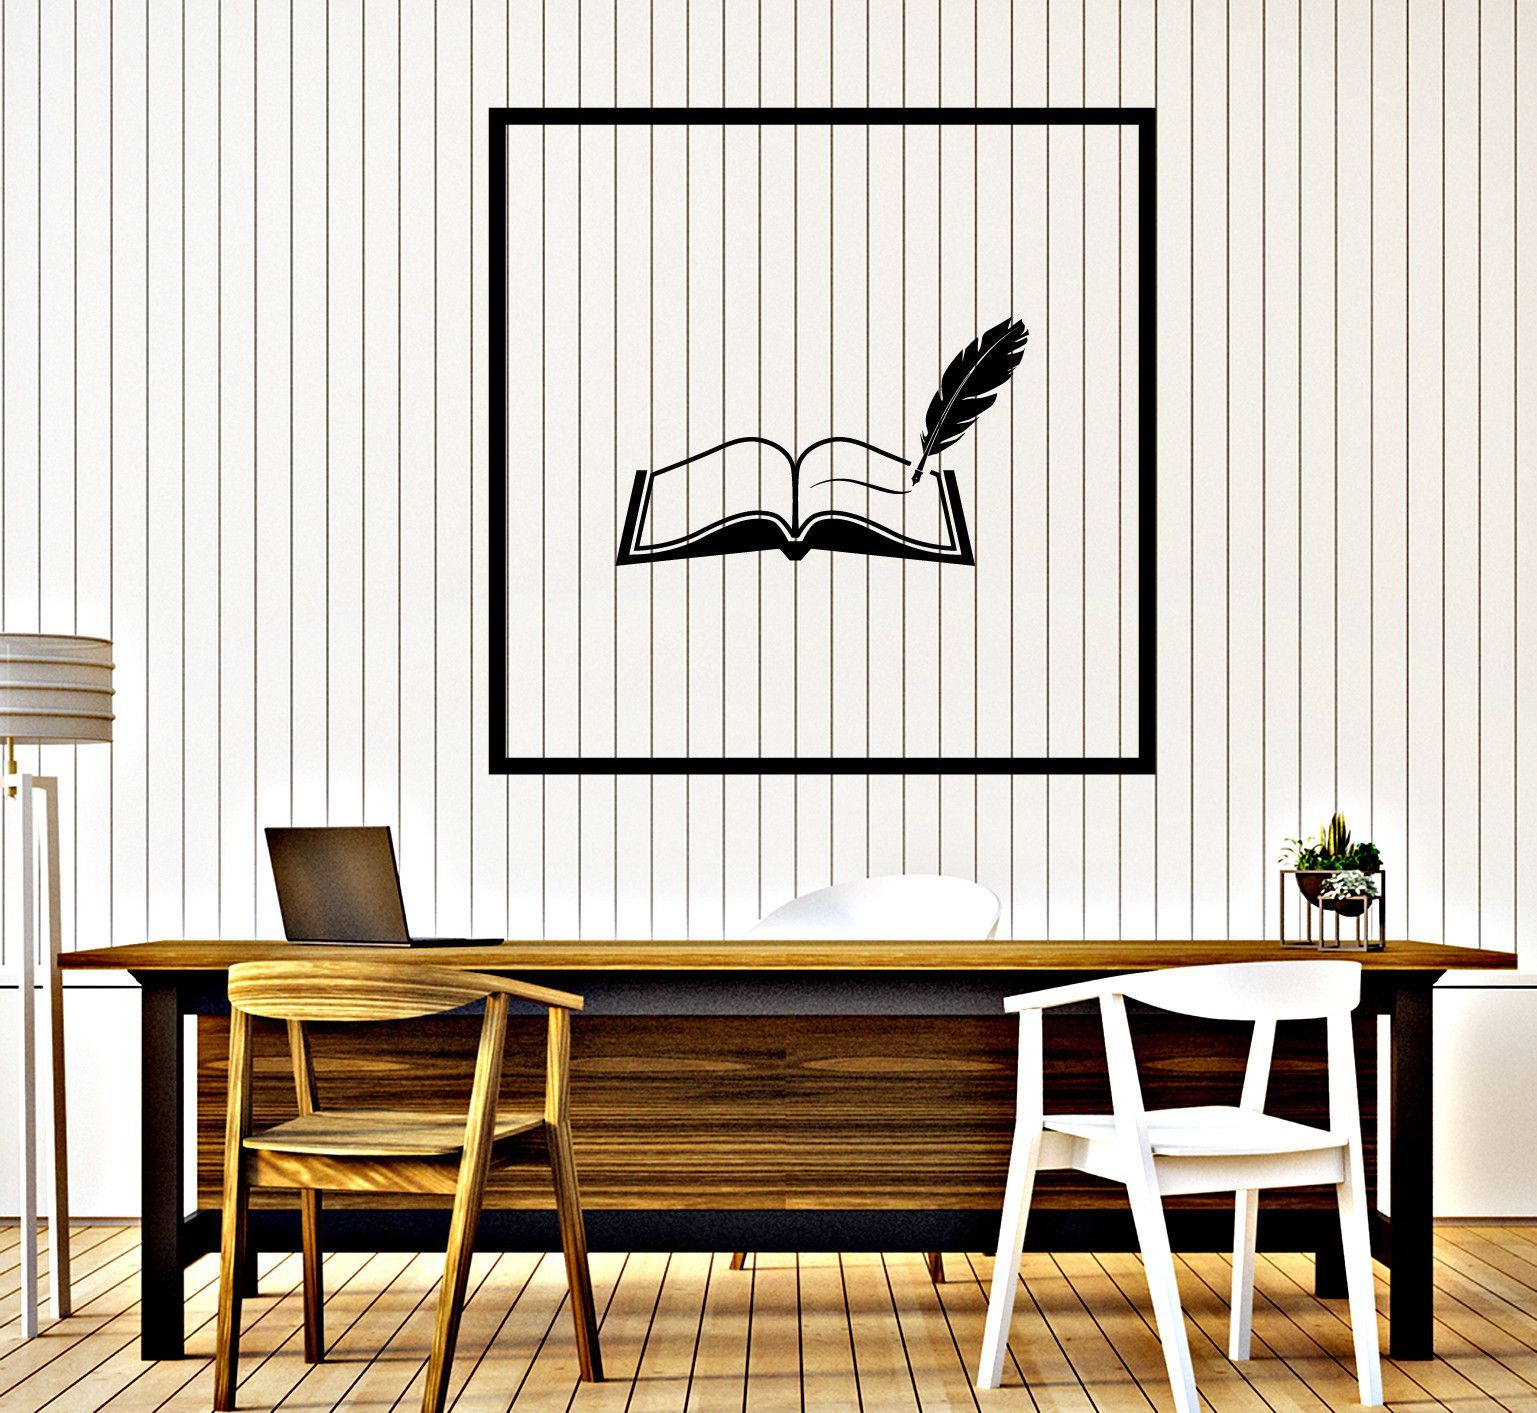 Wall Vinyl Decal Book and Pen Reading Room Library Decor z4643